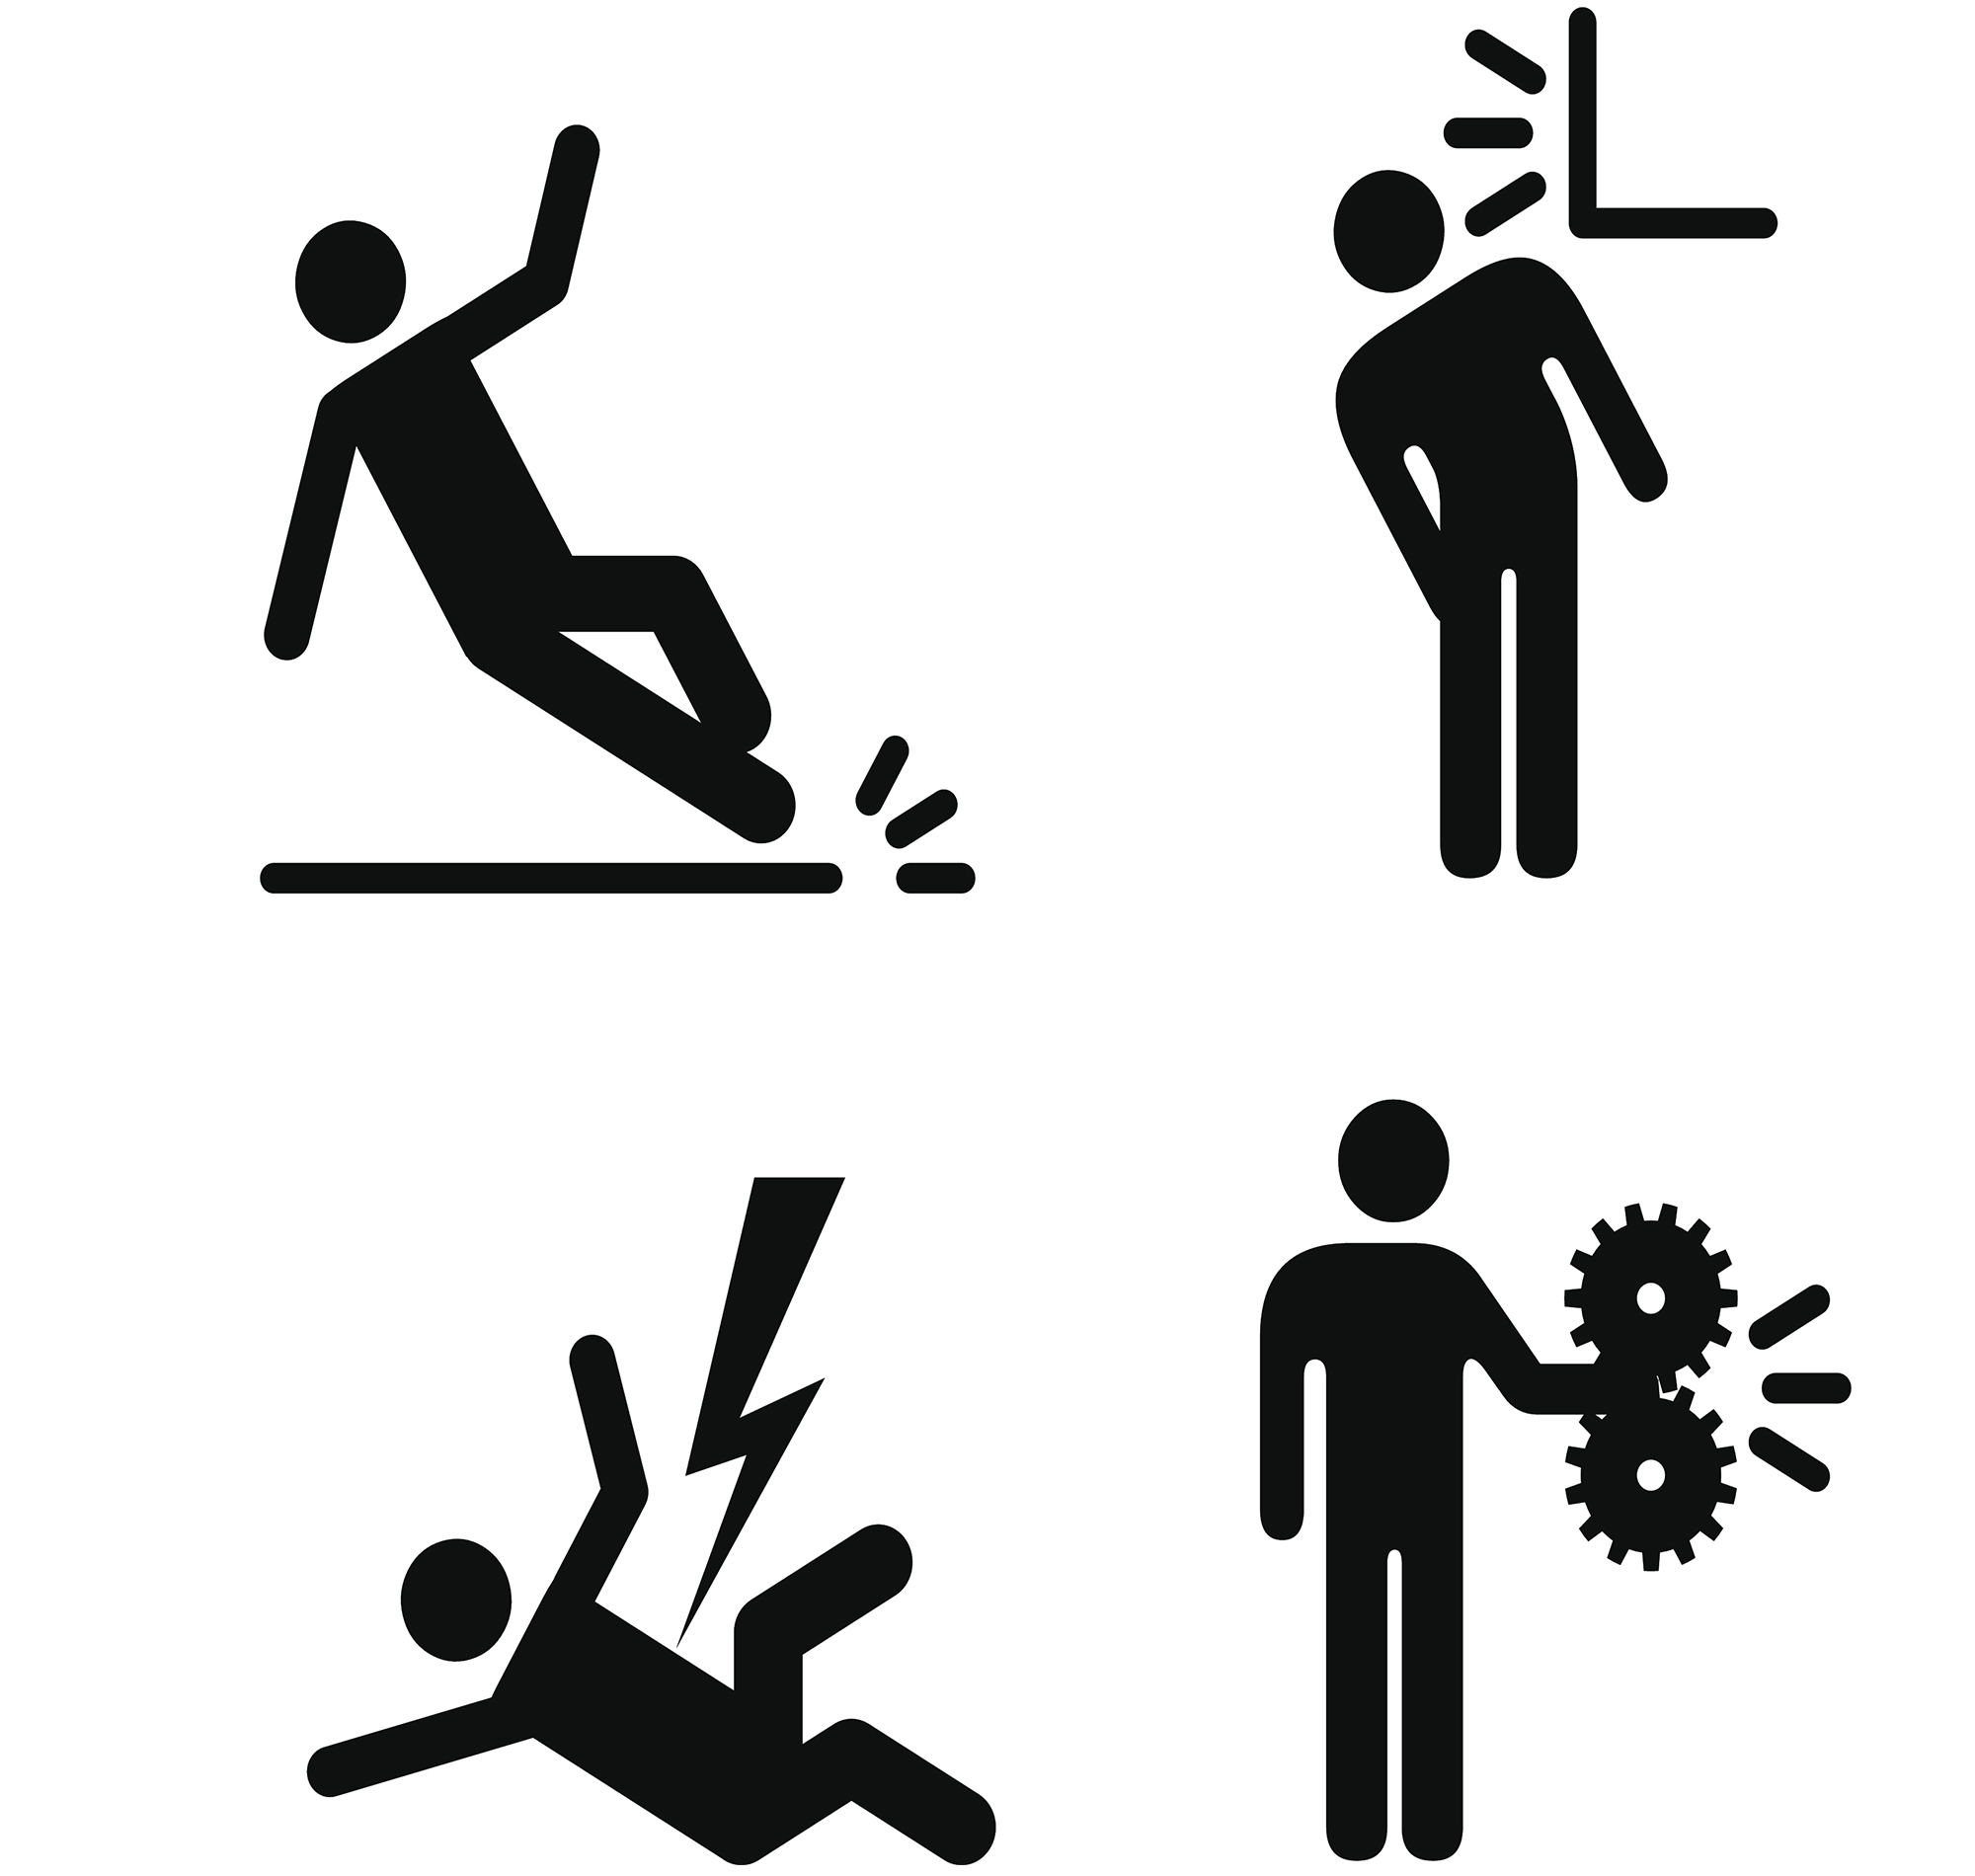 Slip clipart industrial accident. Calculating the true cost